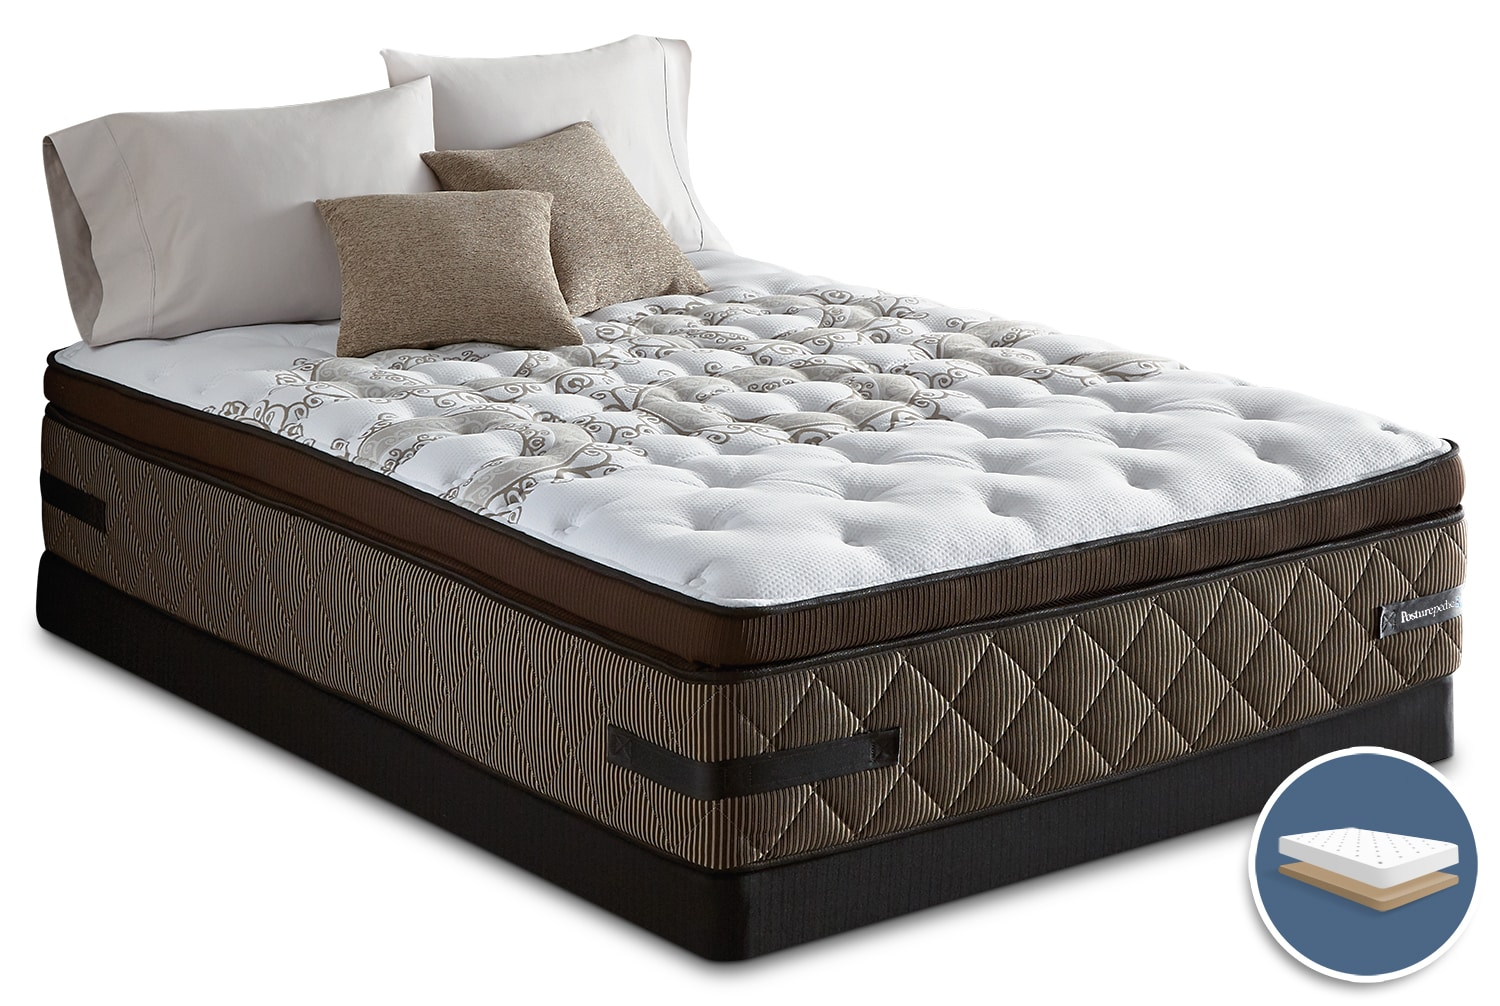 Mattresses and Bedding - Sealy Crown Jewel Sunsera Euro Pillow-Top Plush Low-Profile Full Mattress Set